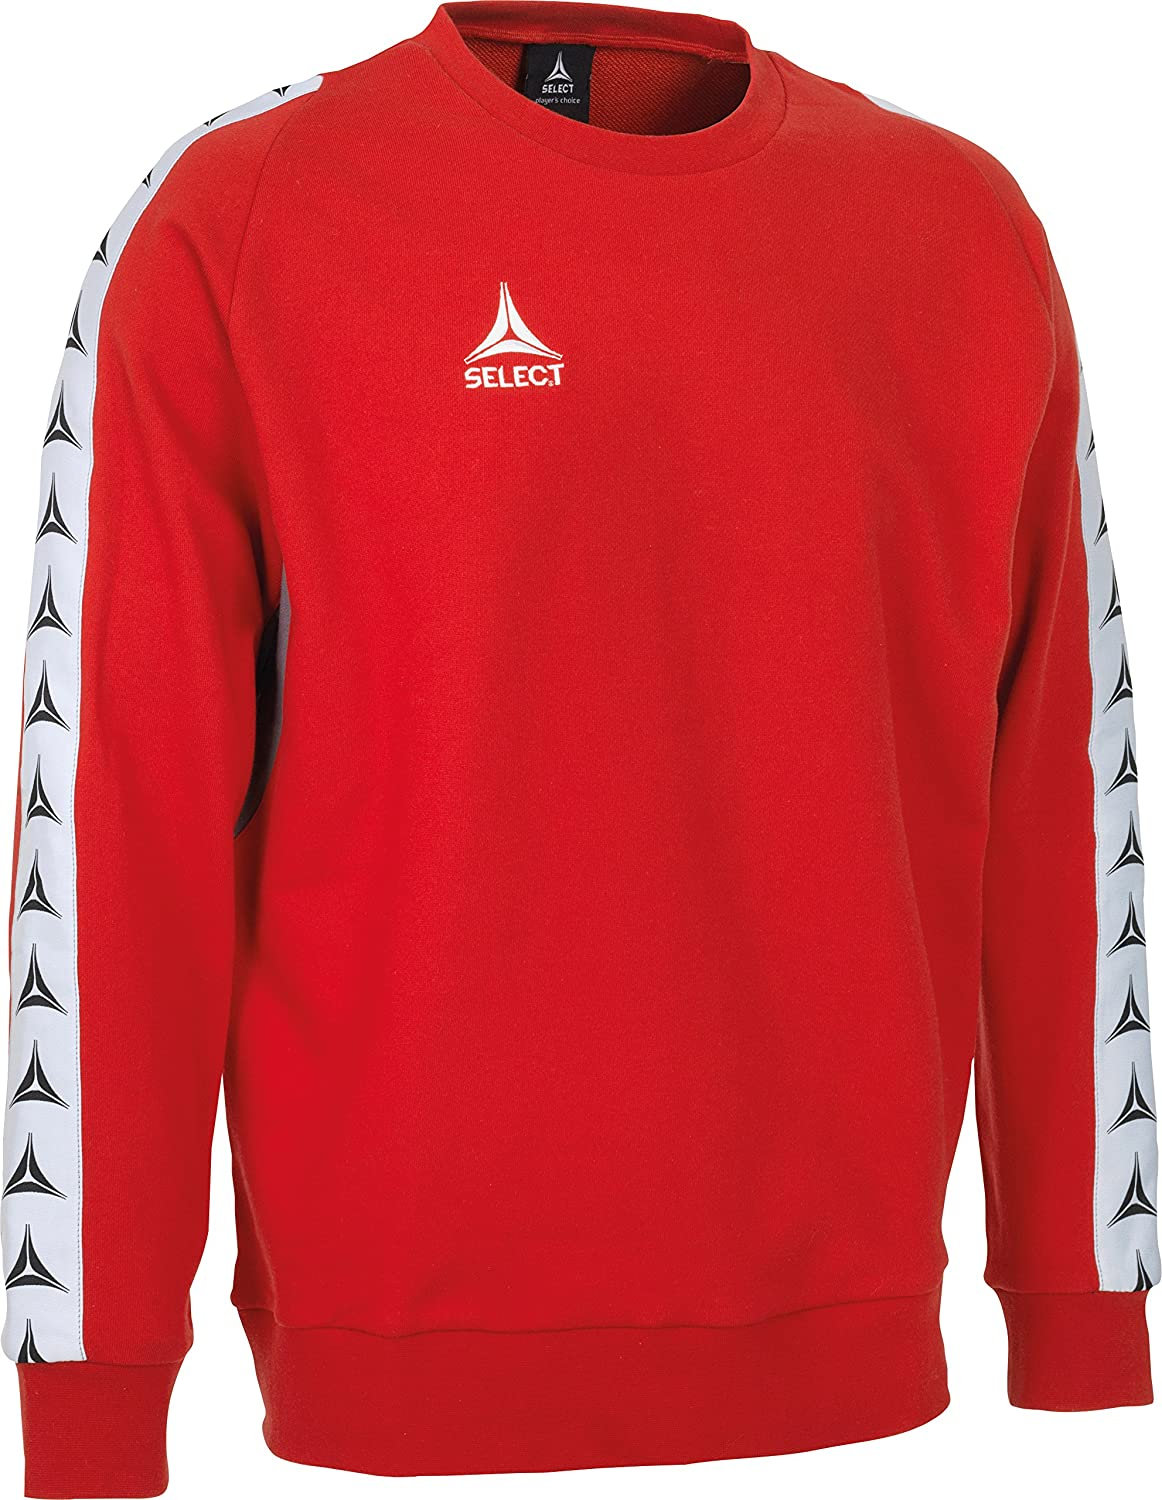 TALLA 3XL. Select Ultimate - Sudadera